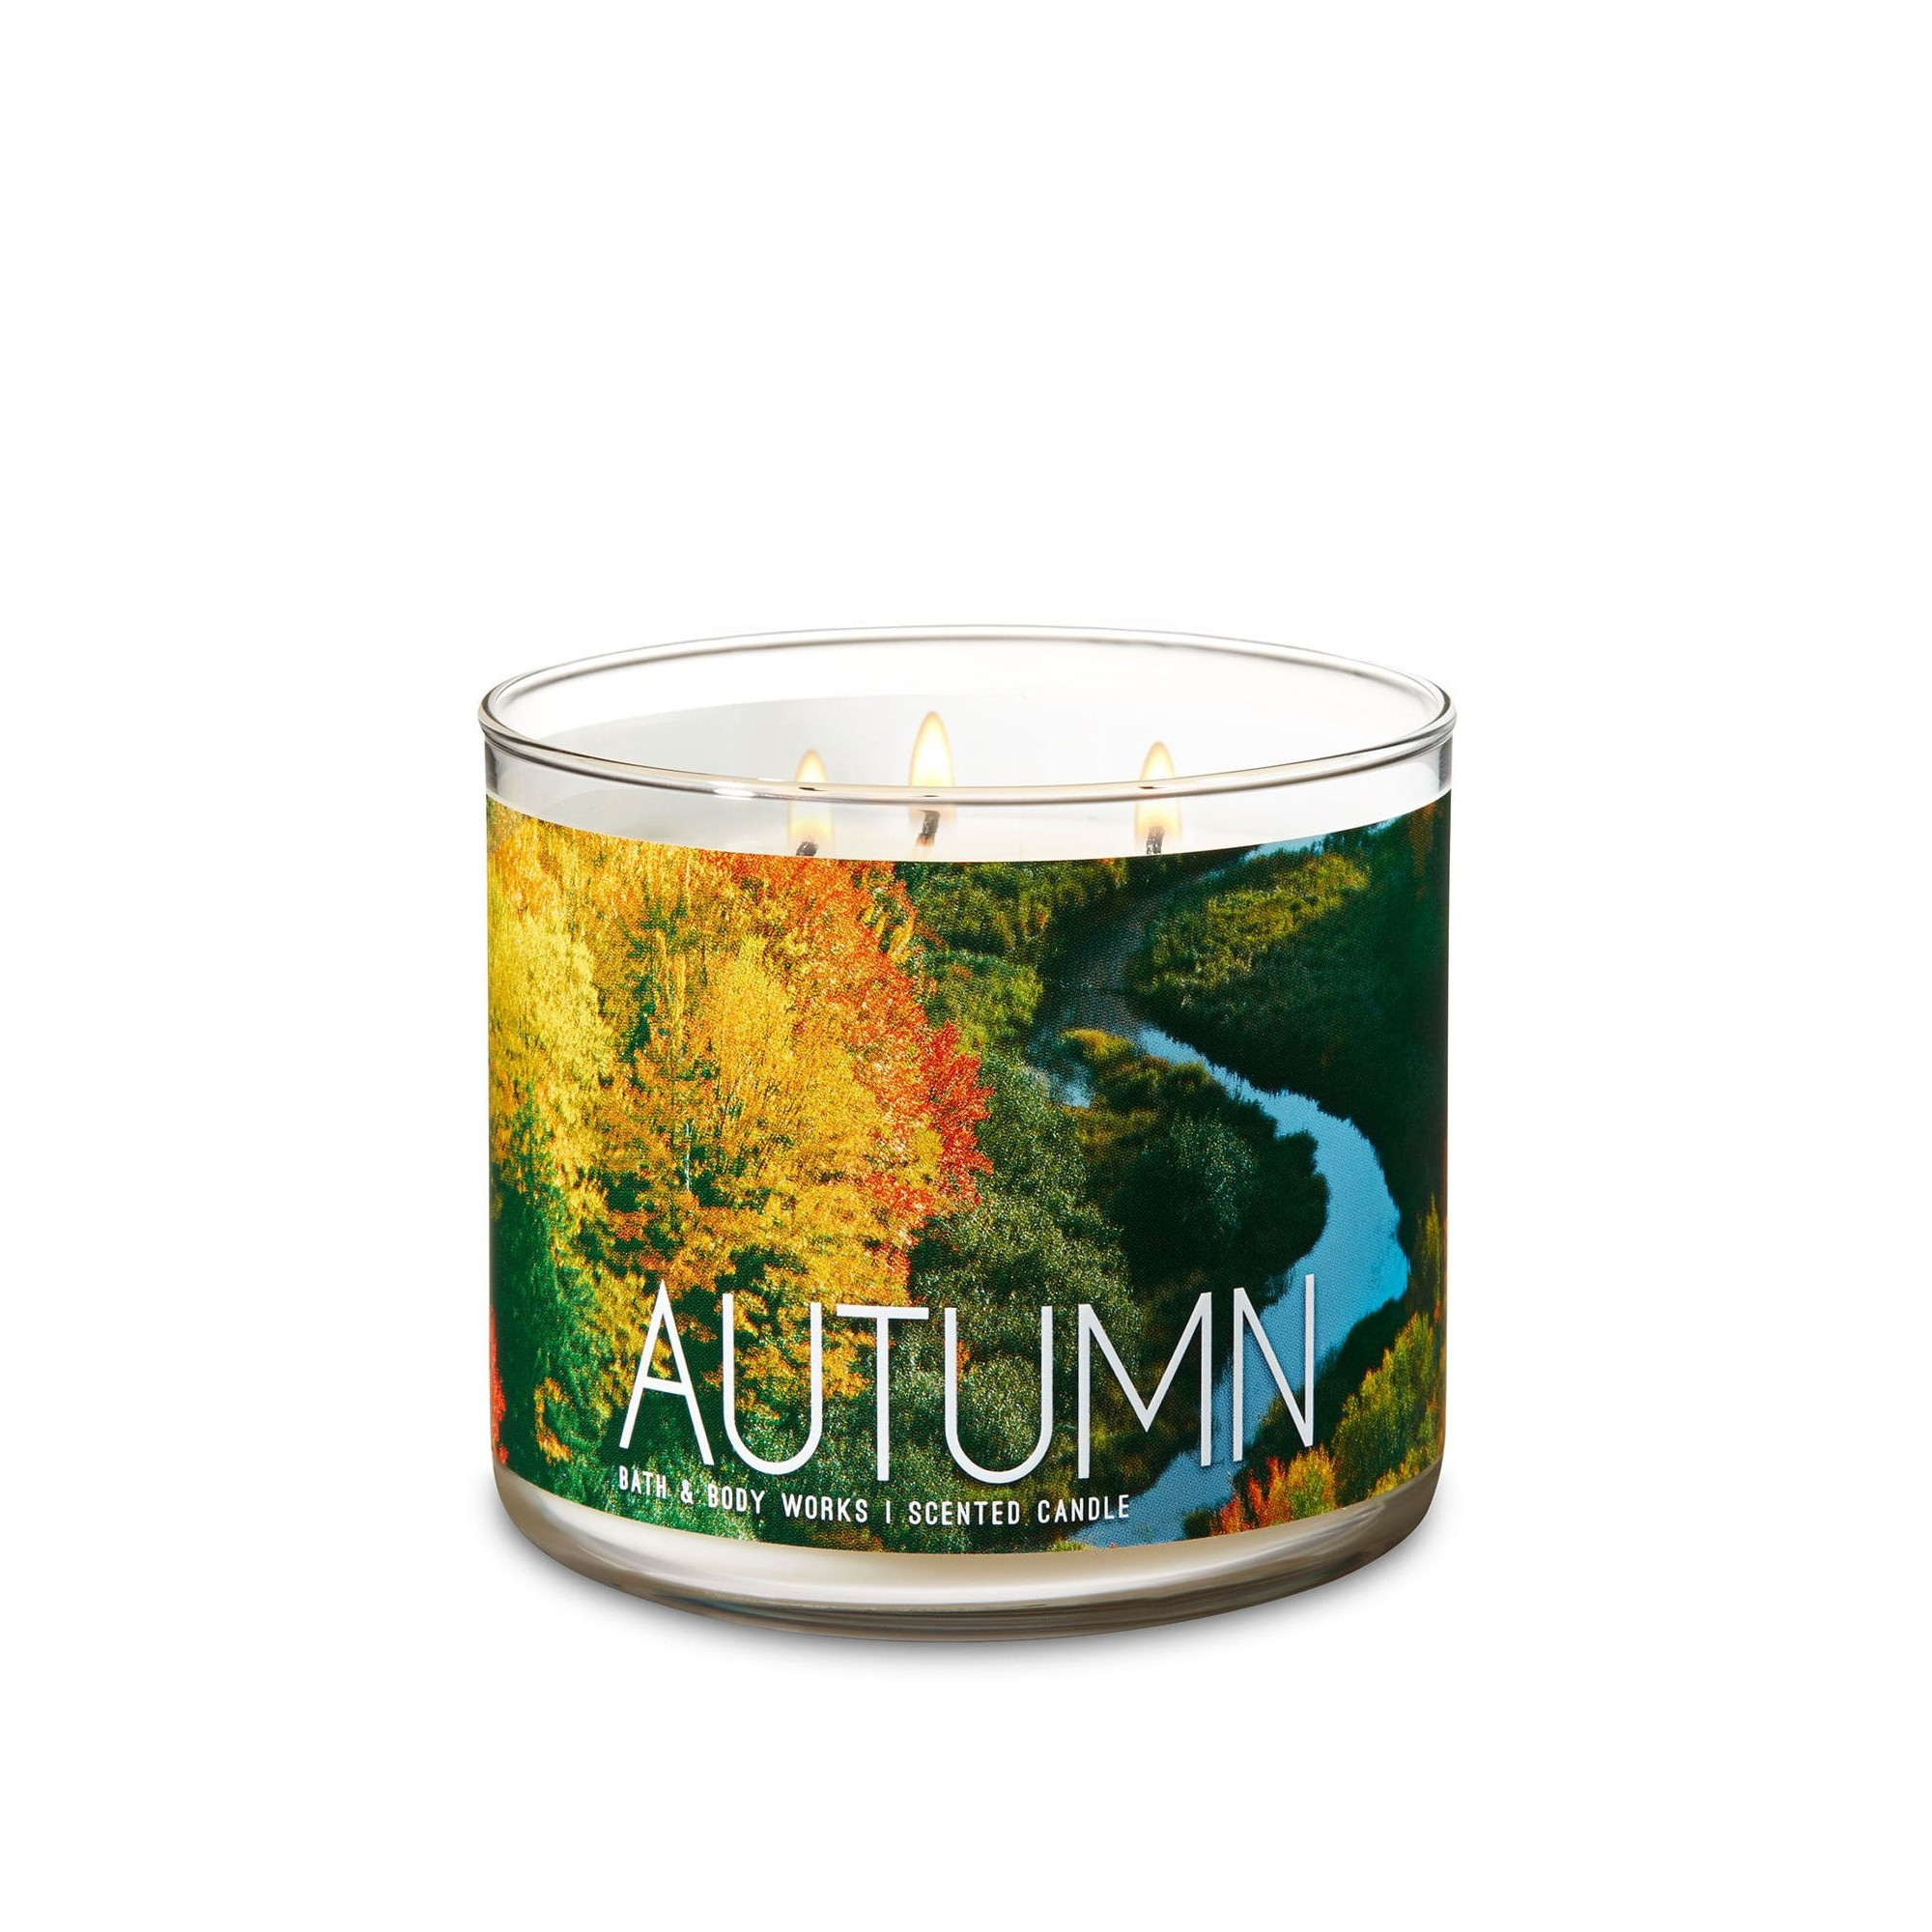 Bath & Body Works Autumn 3 Wick Scented Candle